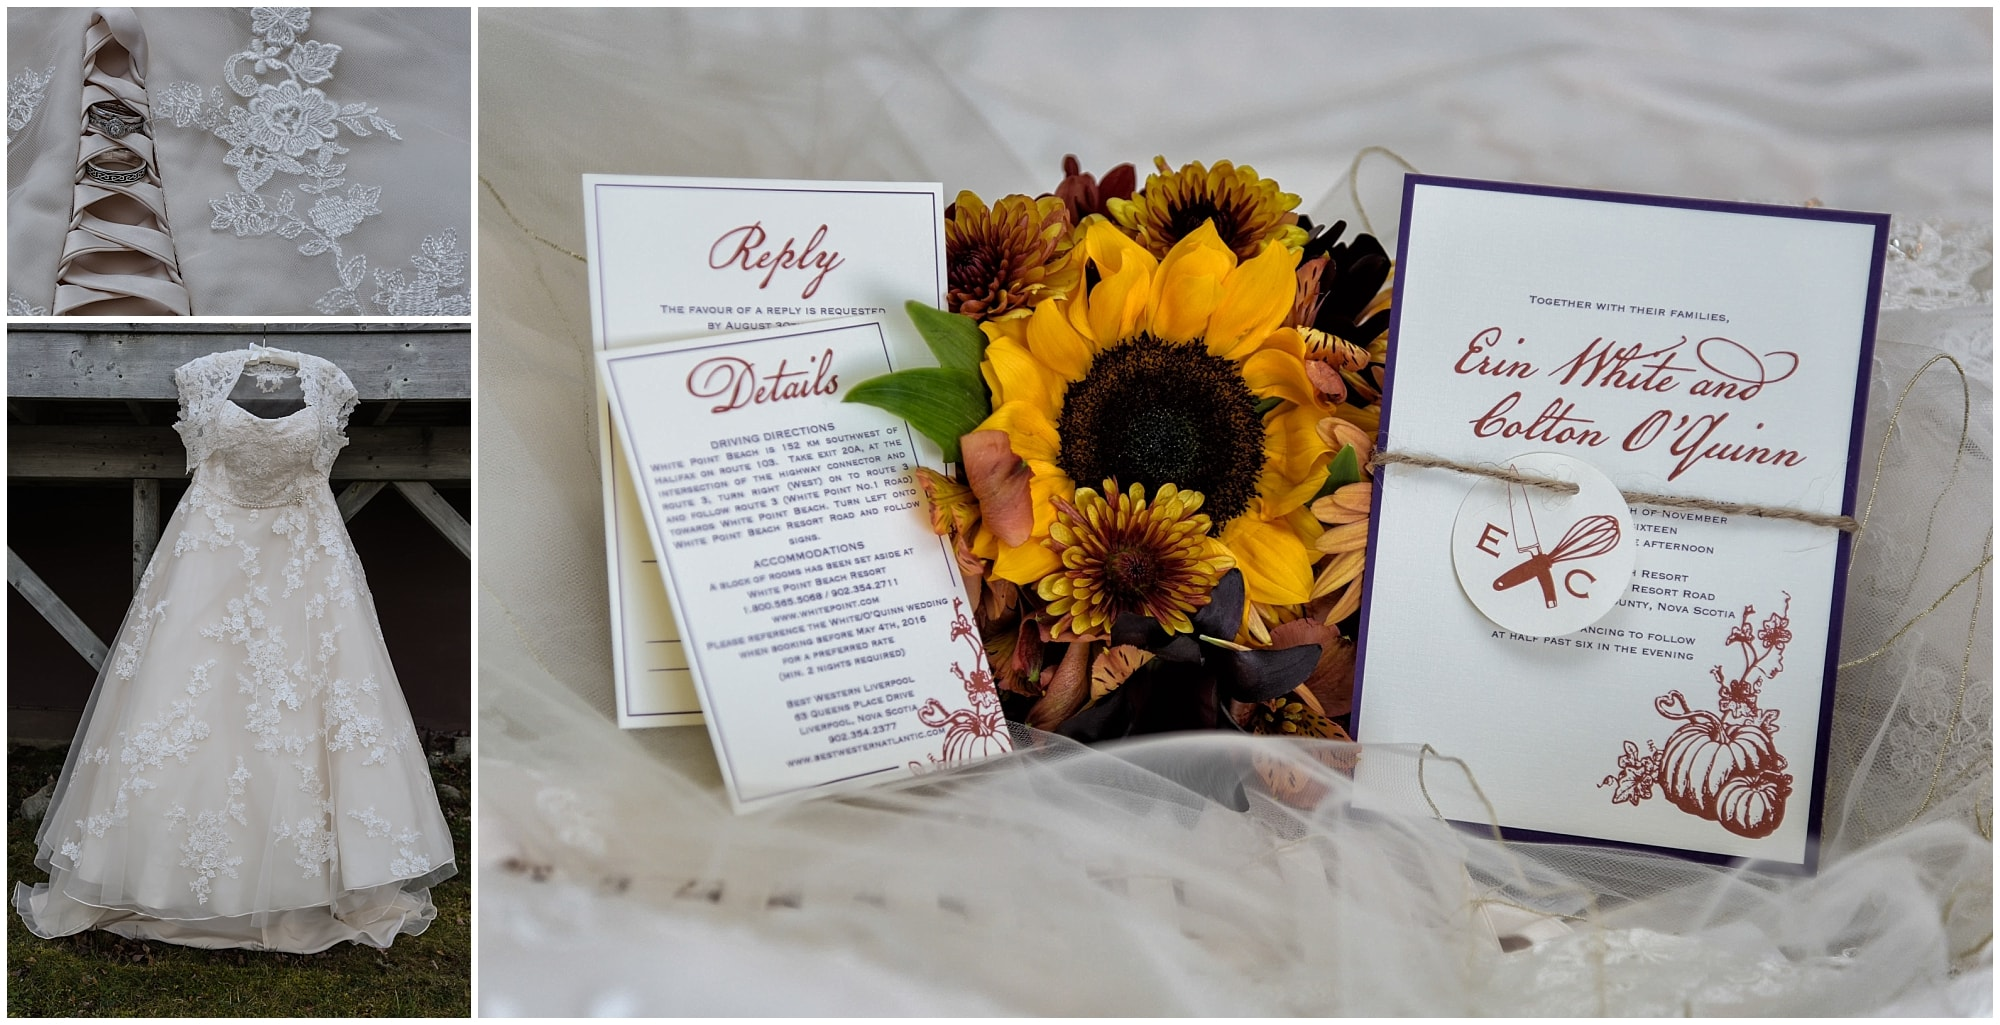 The bride's wedding gown with her wedding invitation and sunflower bridal bouquet.